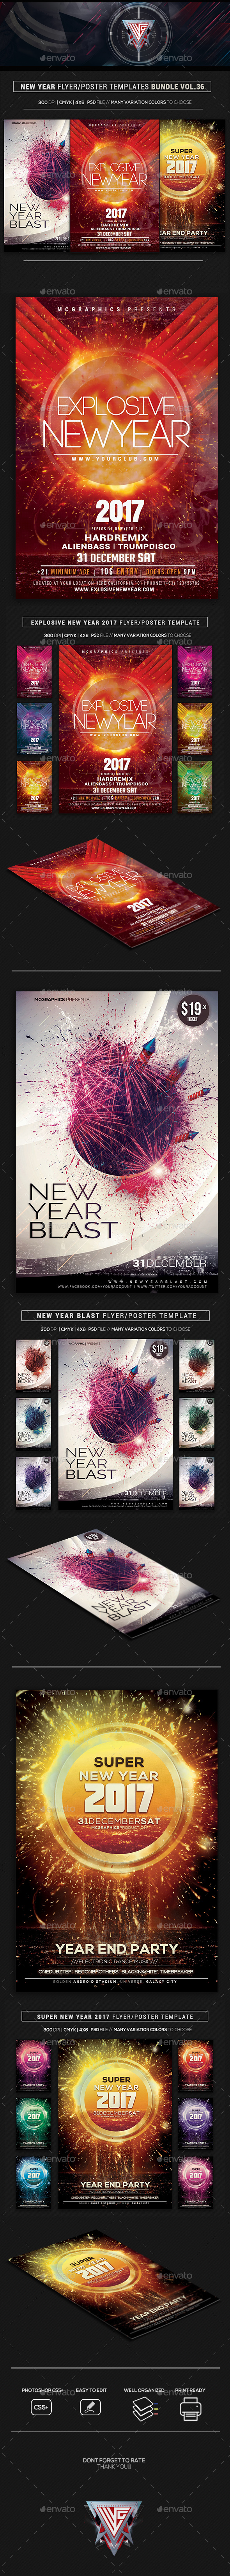 Electro Music Flyer Bundle Vol. 36 - Flyers Print Templates